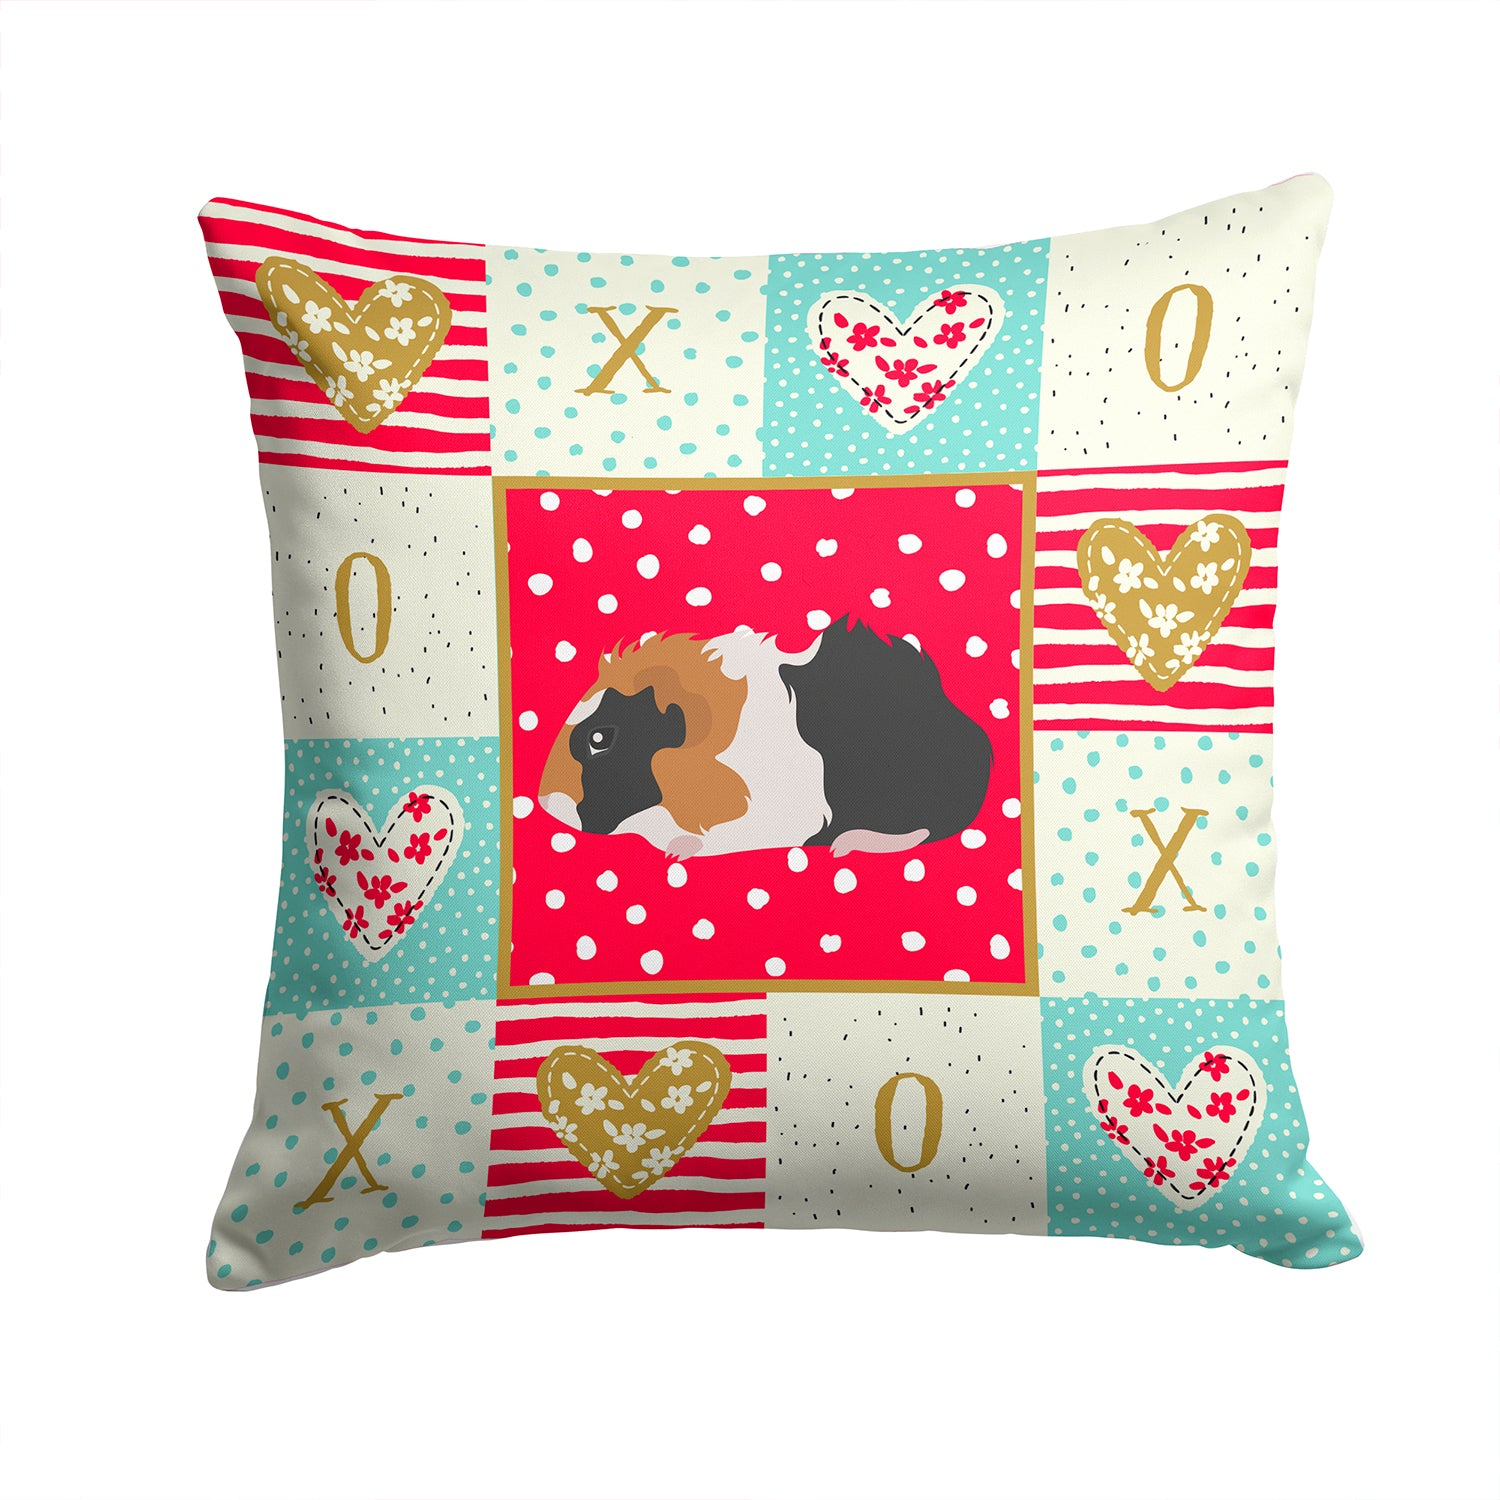 Abyssinian Guinea Pig Love Fabric Decorative Pillow CK5426PW1414 by Caroline's Treasures